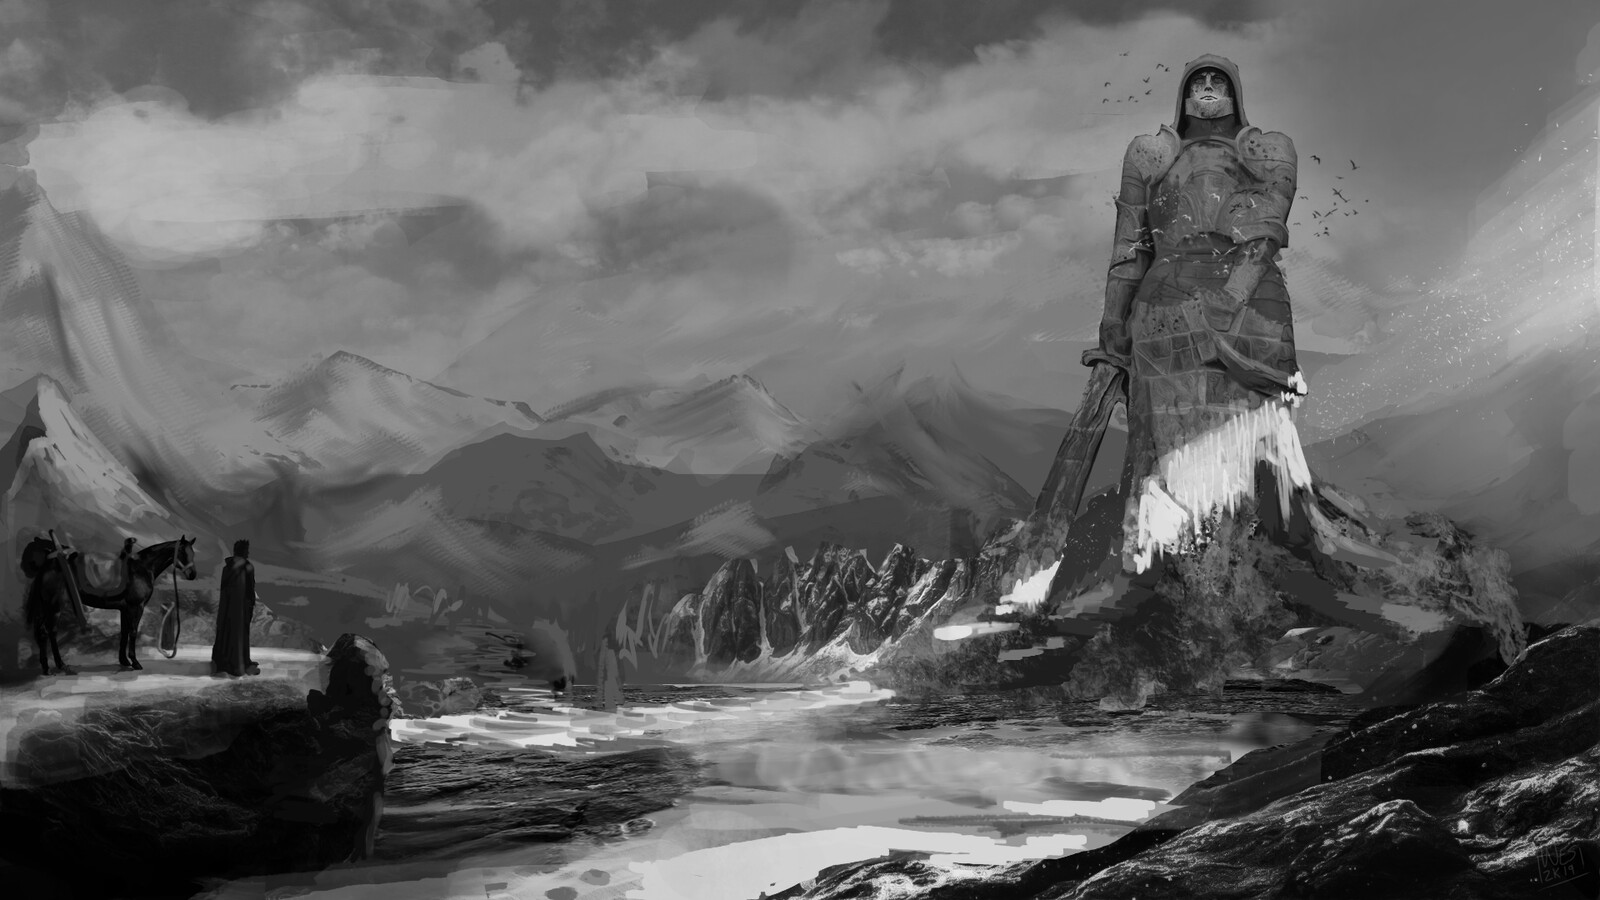 Original black and white value study. About 3.5 hours of work total